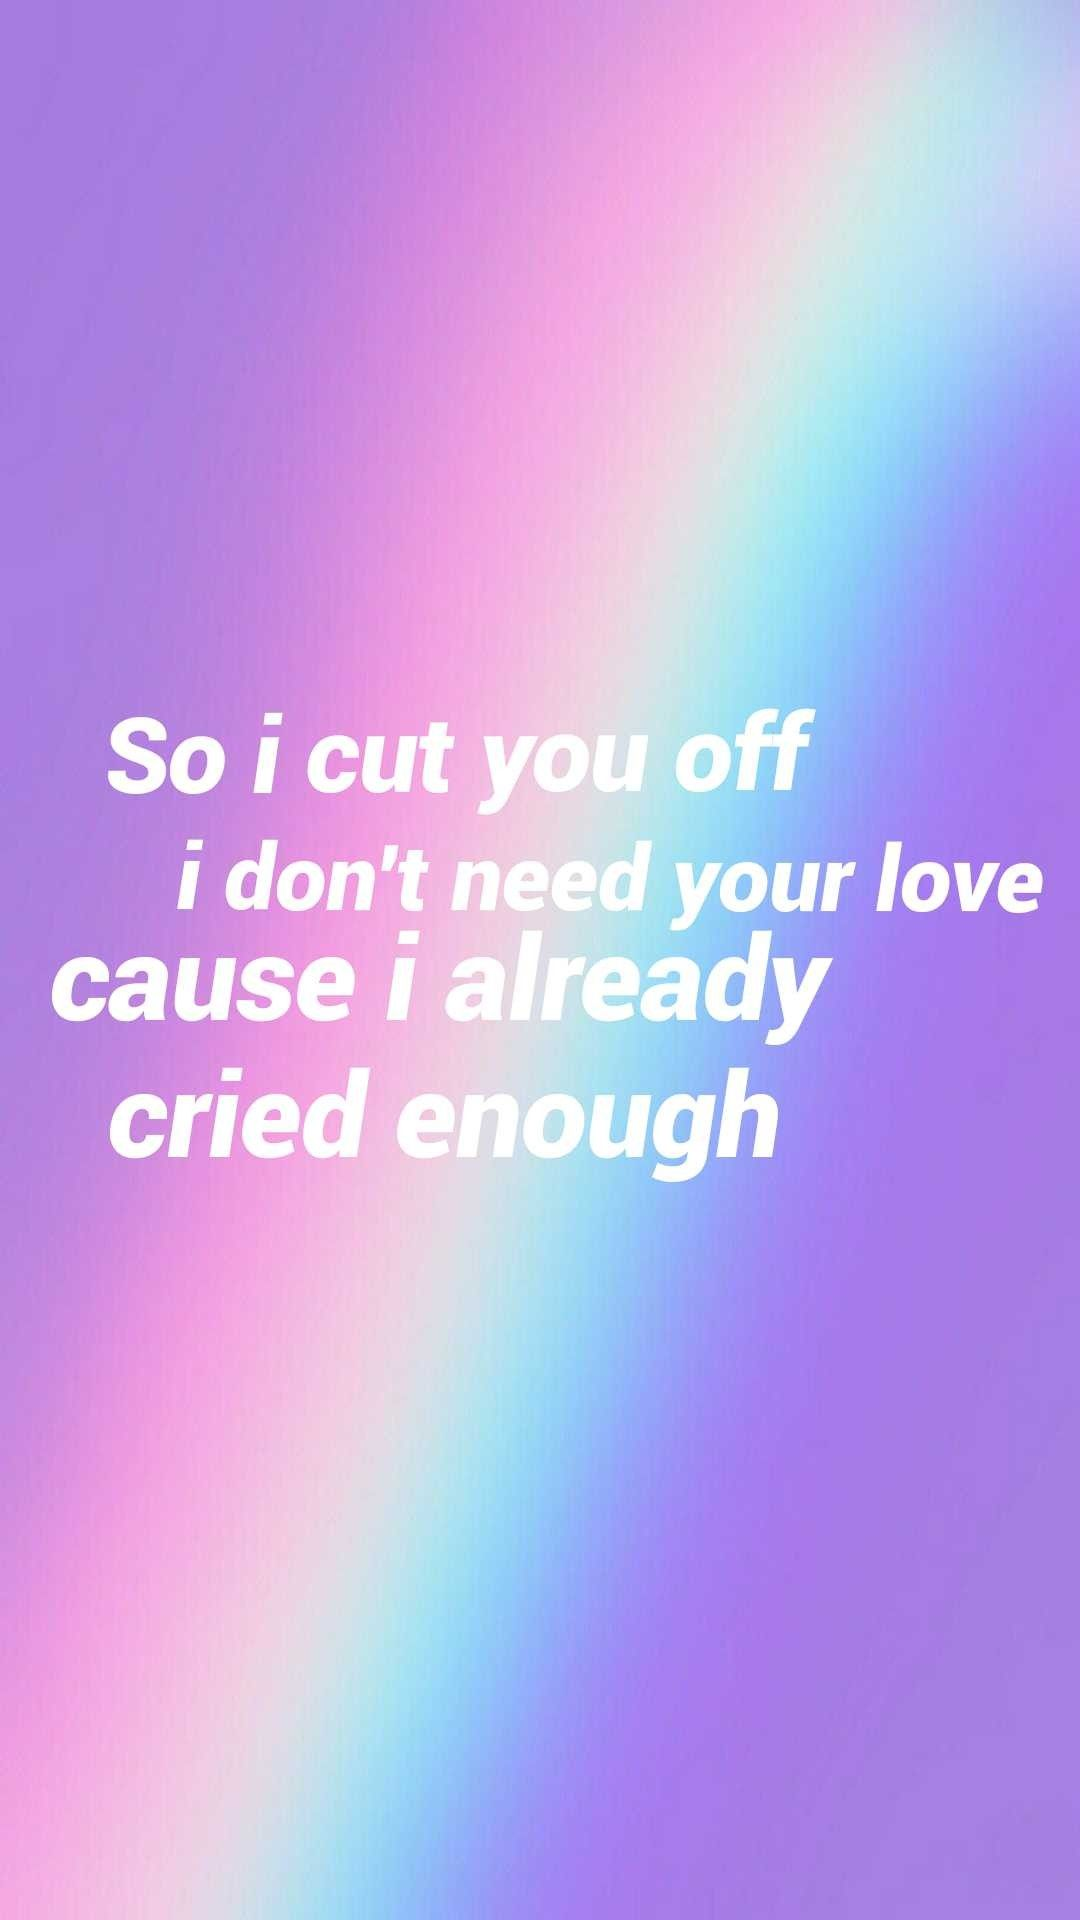 So I Cut You Off I Don't Need Your Love